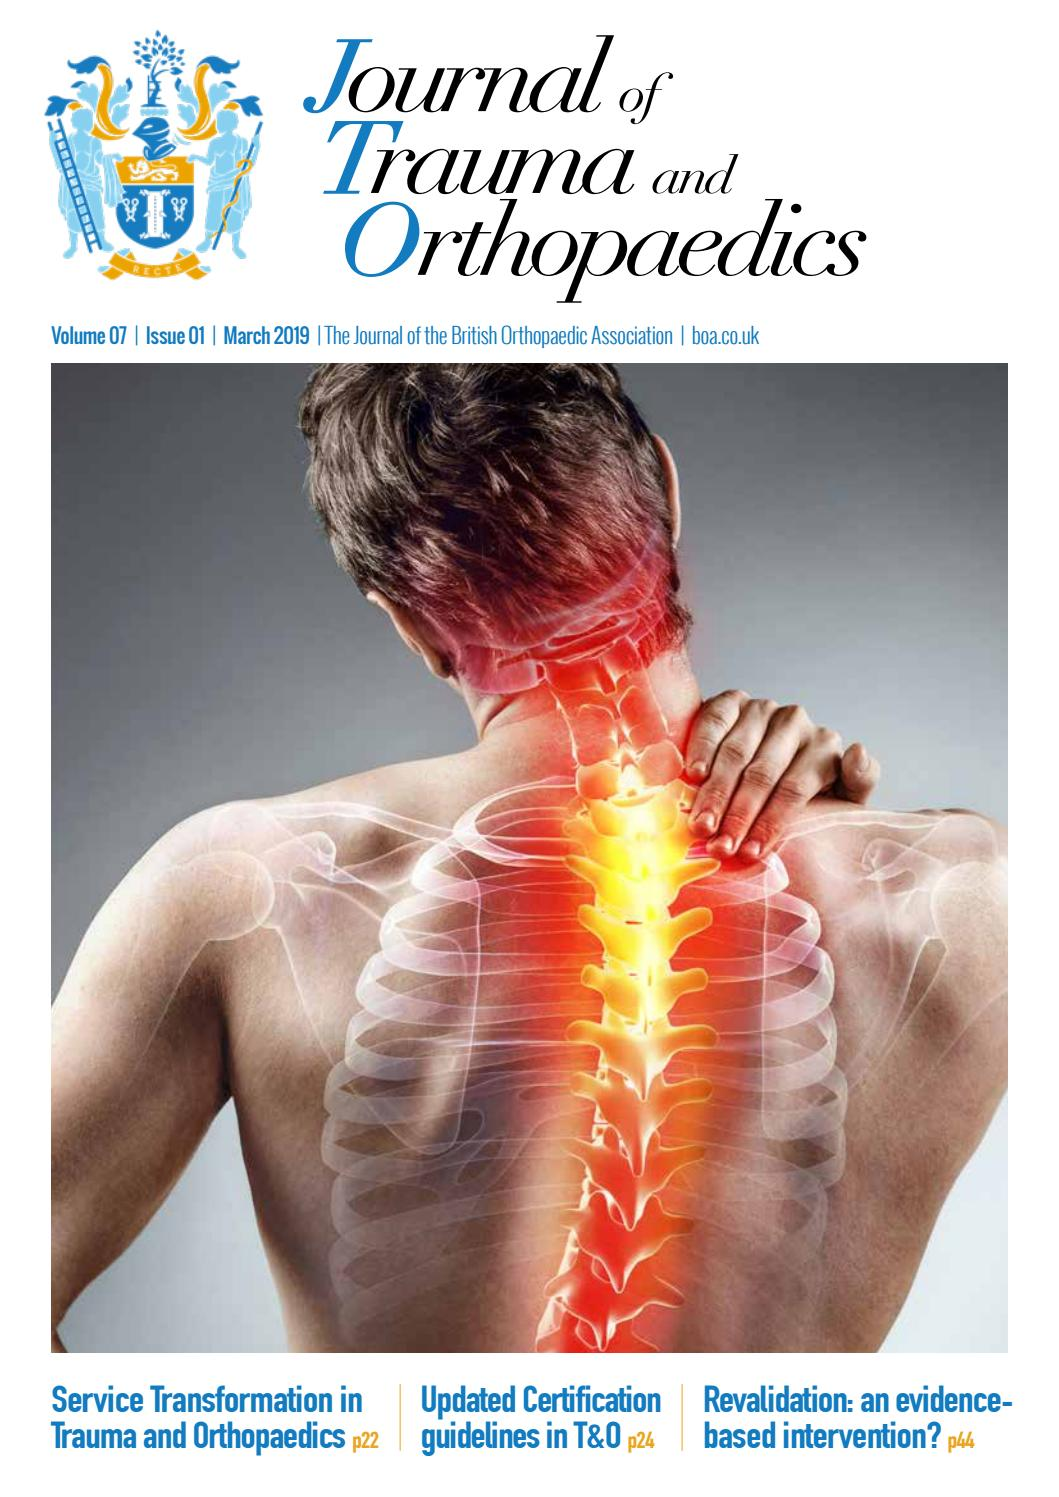 Journal of Trauma & Orthopaedics - Vol 7 / Iss 1 by British